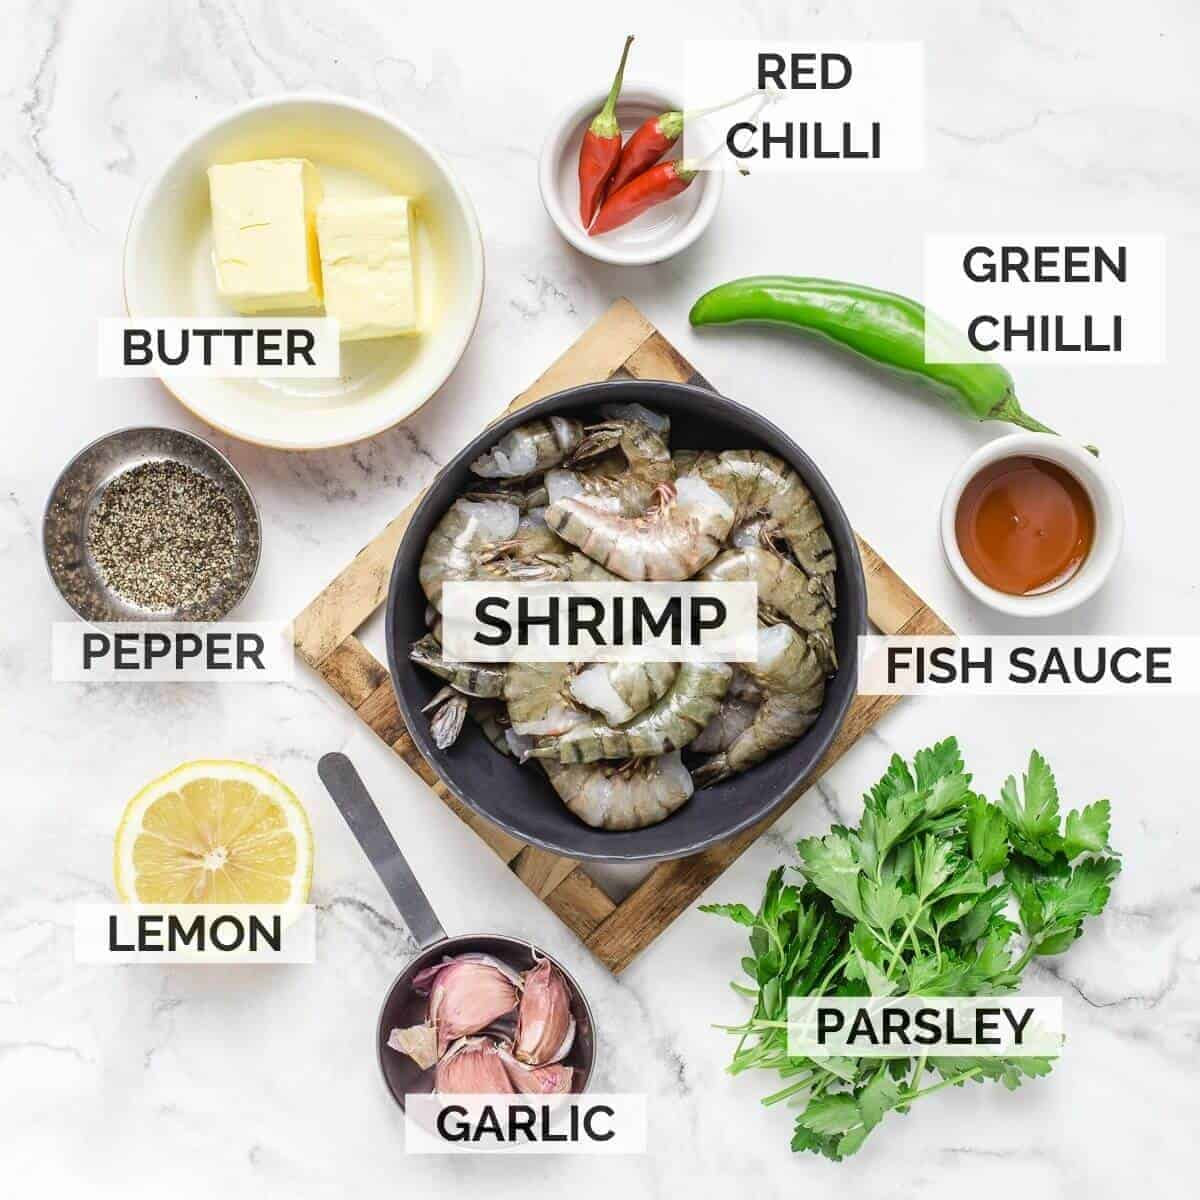 ingredients for making this recipe. butter, chilli red, chilli green, parsley, shrimps, pepper, lemon, garlic, fish sauce